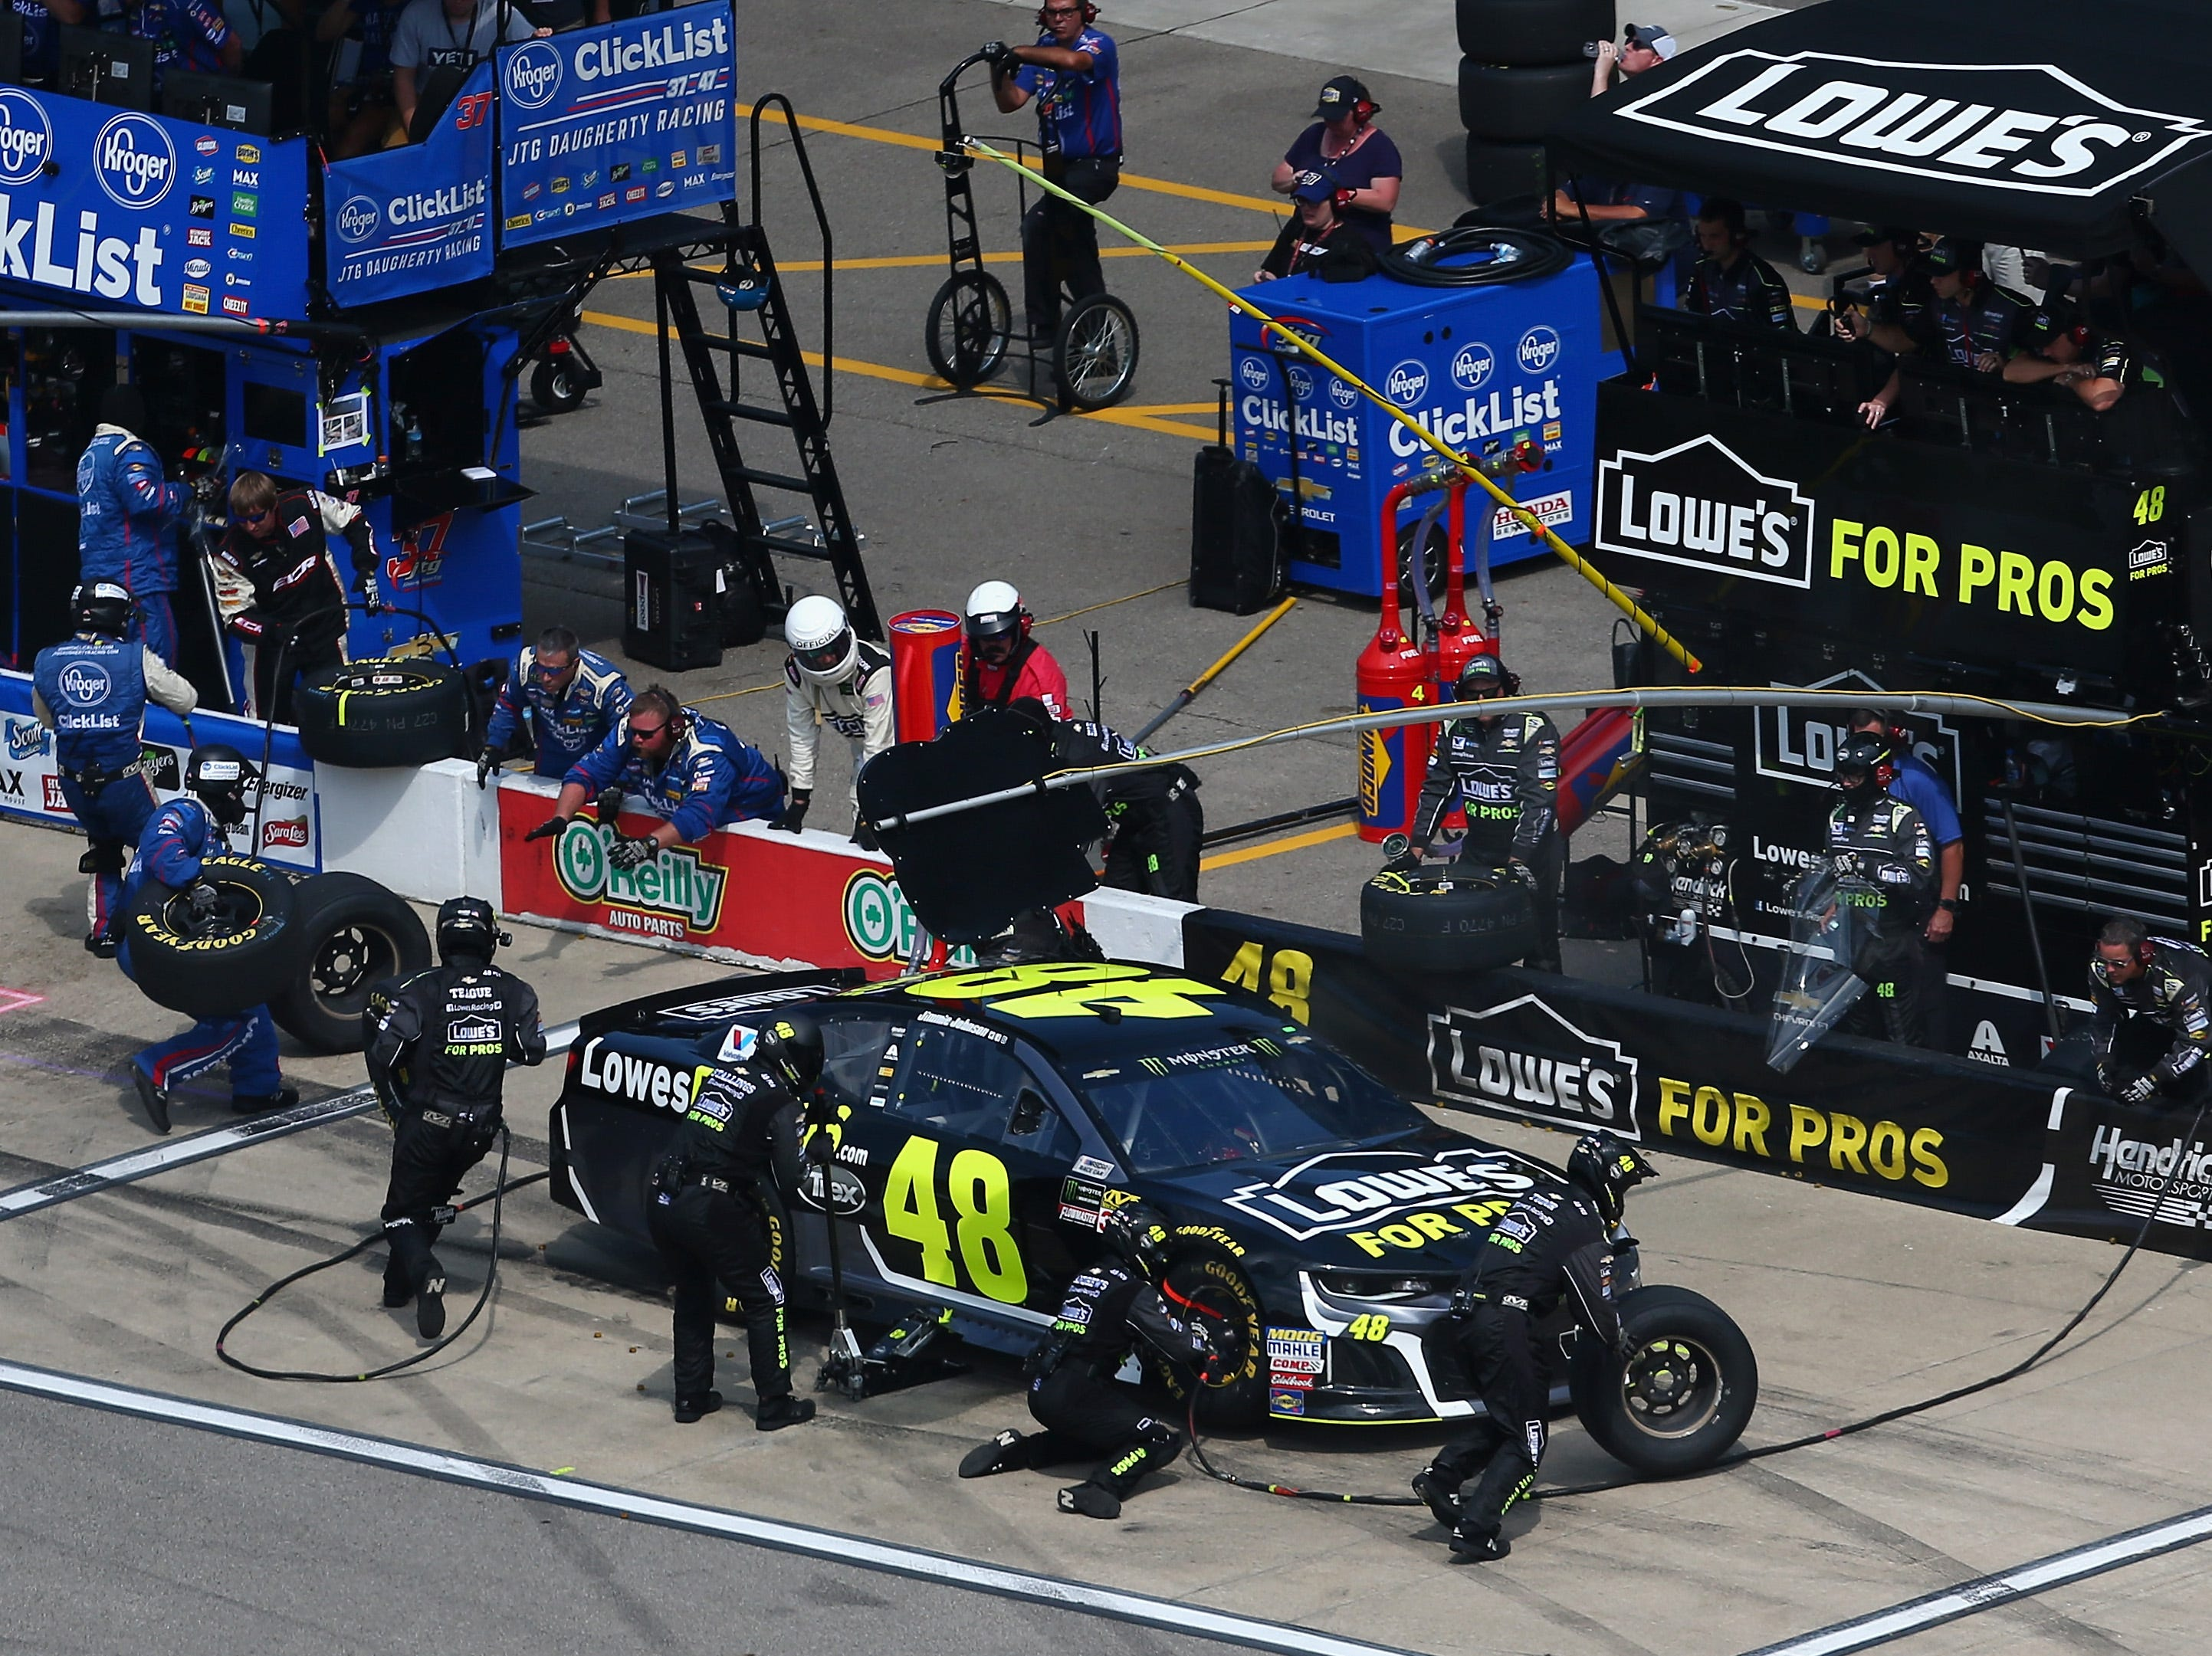 Jimmie Johnson, driver of the No. 48 Lowe's for Pros Chevrolet, pits during the Monster Energy NASCAR Cup Series Consmers Energy 400 at Michigan International Speedway on August 12, 2018 in Brooklyn, Michigan.